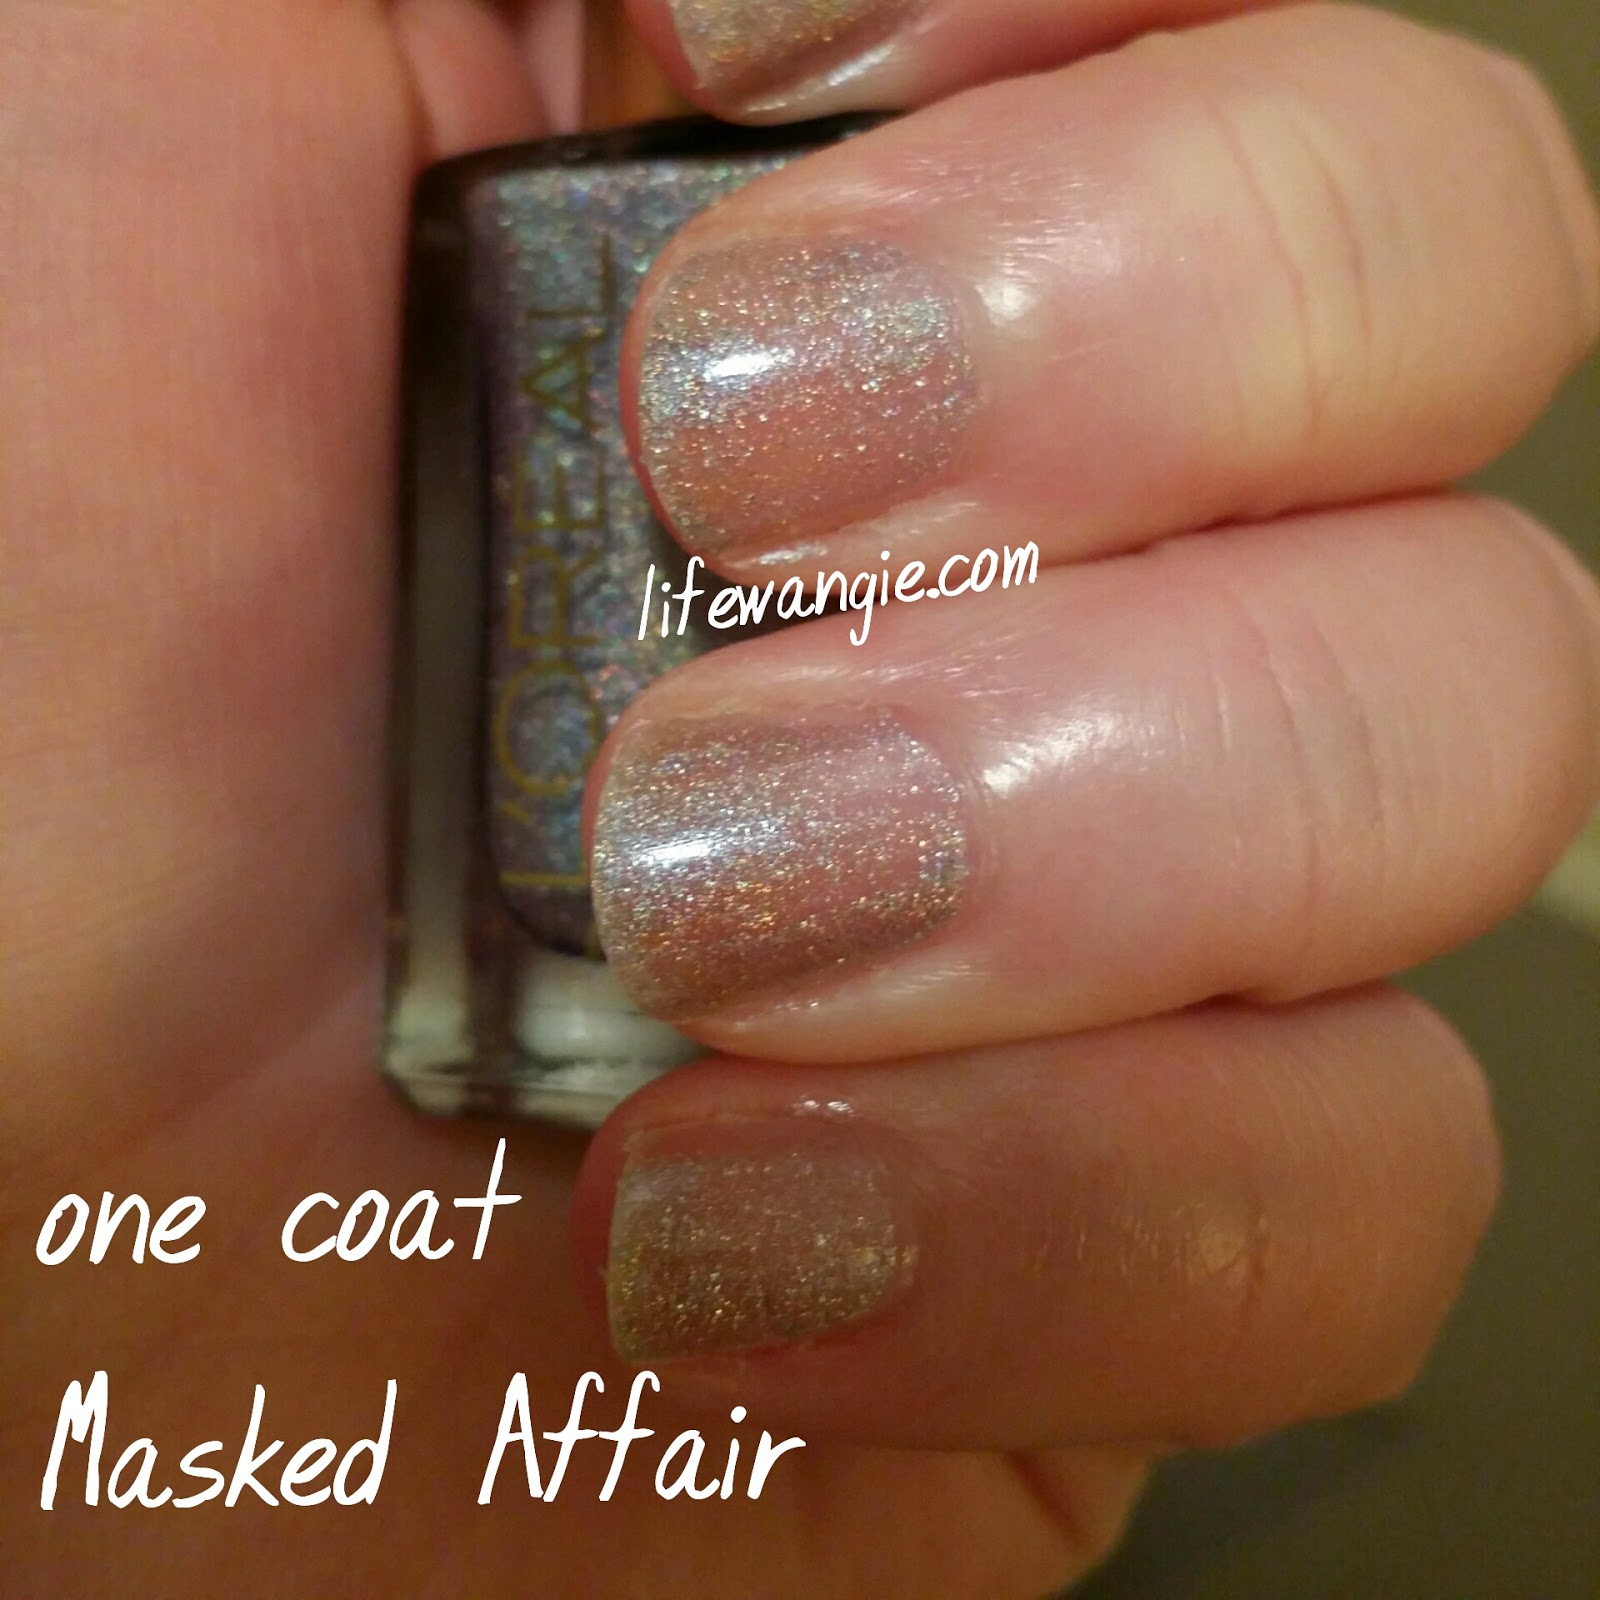 One Coat of Loreal Masked Affair